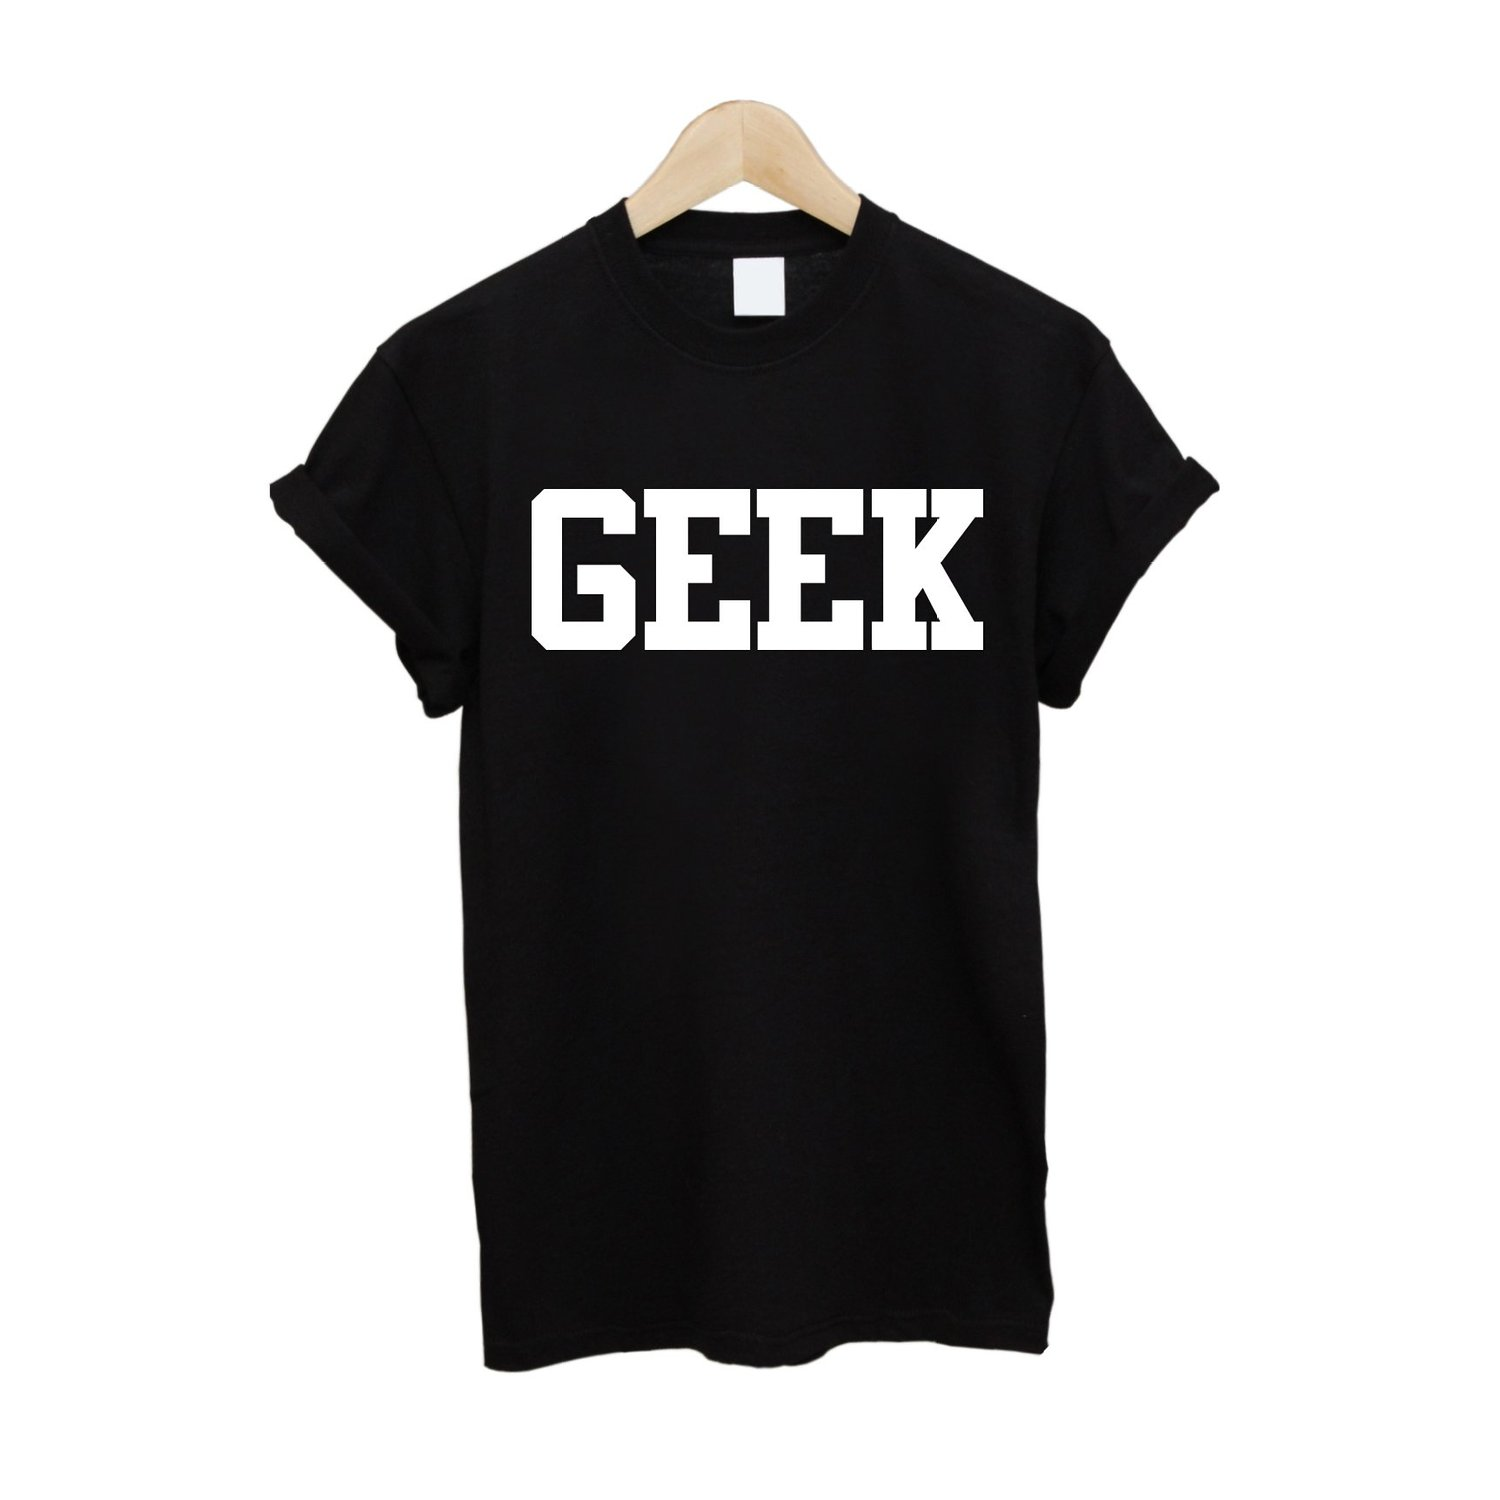 Geek T Shirt: Amazon.co.uk: Clothing